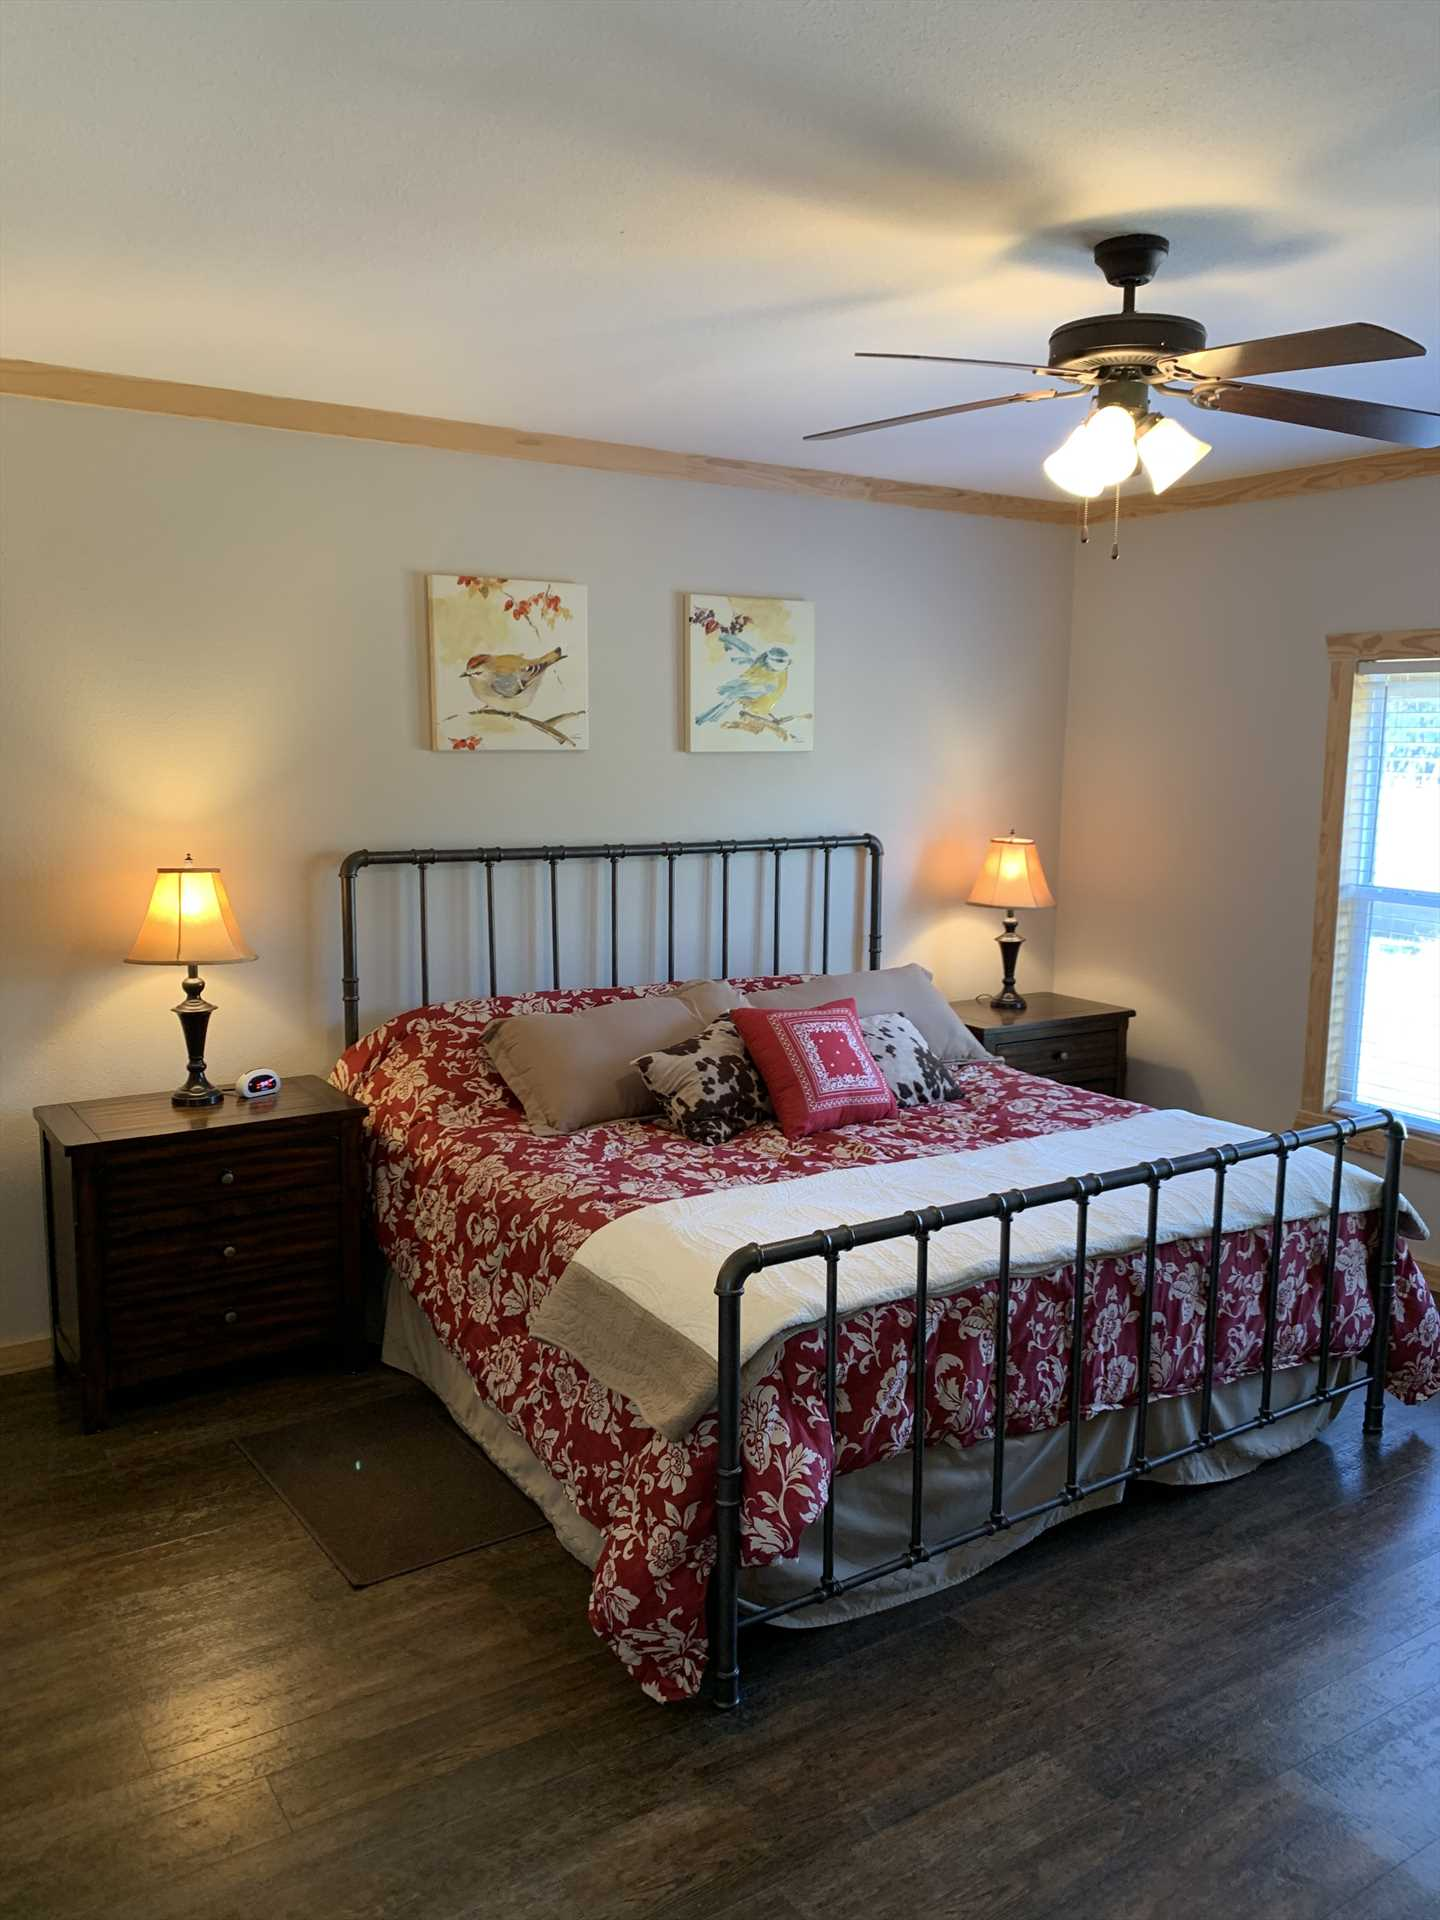 A big king-sized bed is the highlight of the master bedroom, and it has a satellite TV, too. All the beds in the Hideaway are draped in clean, complimentary linens.